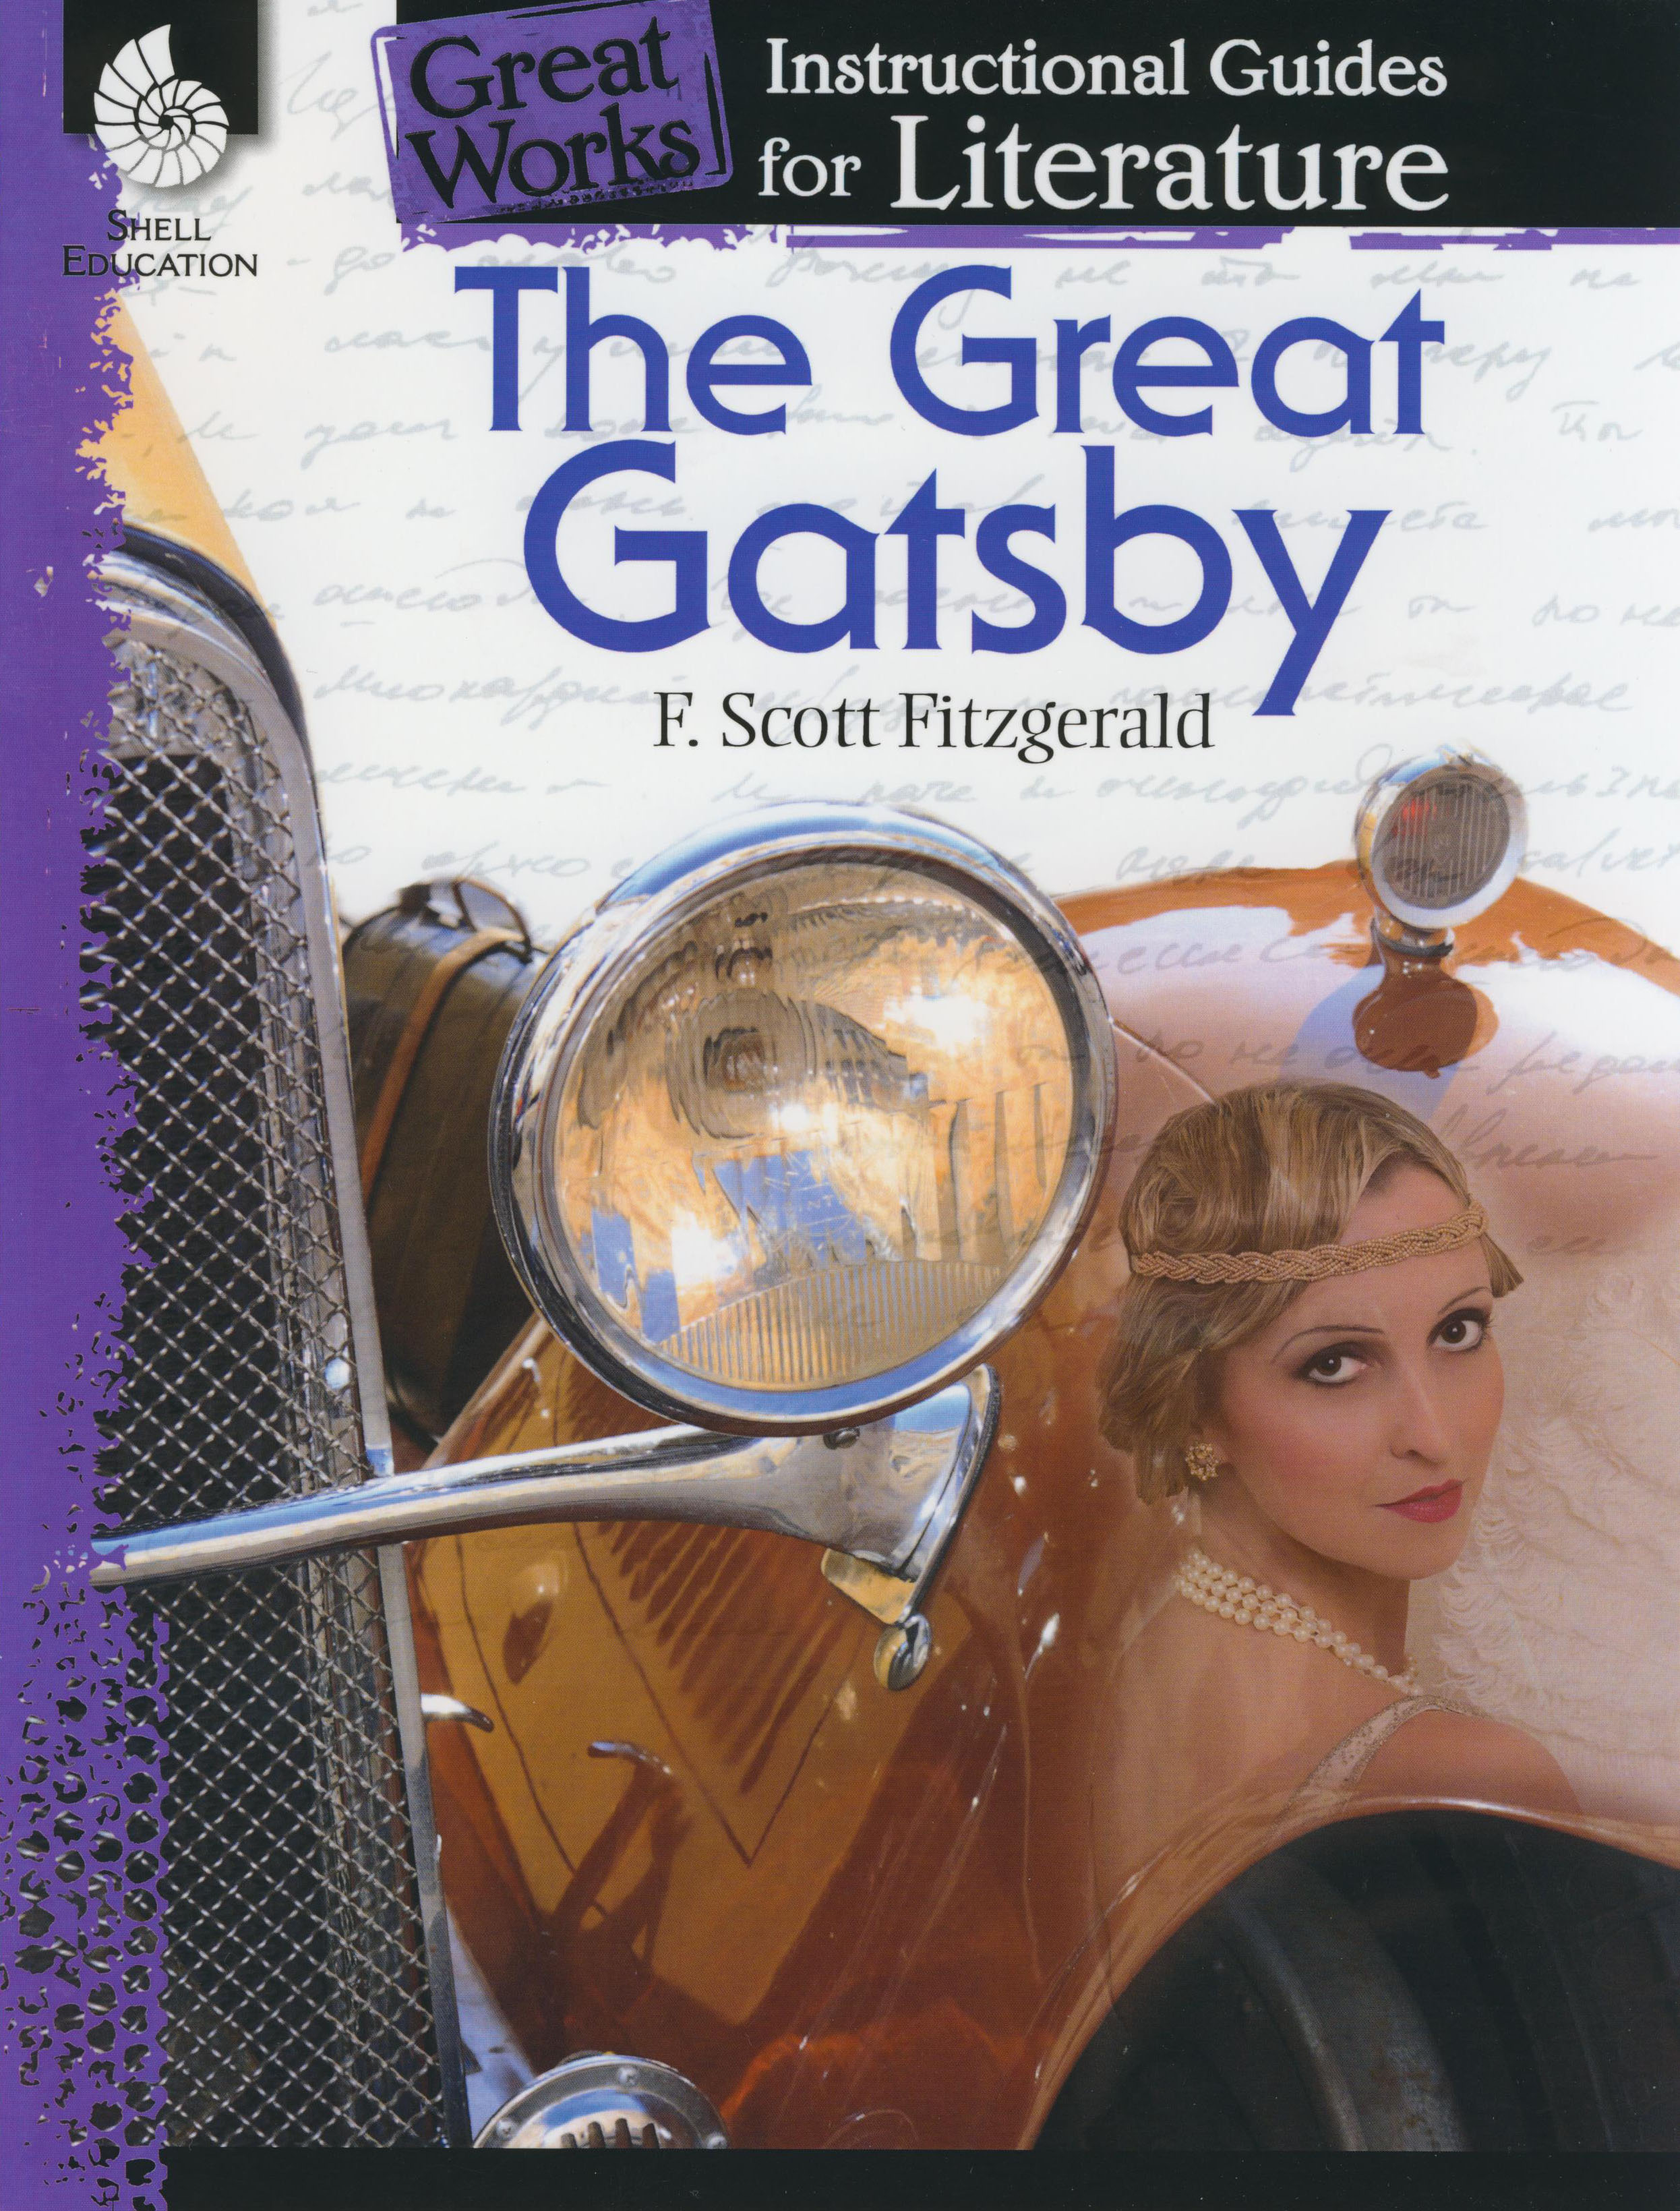 Great Works Instructional Guide for Literature: The Great Gatsby